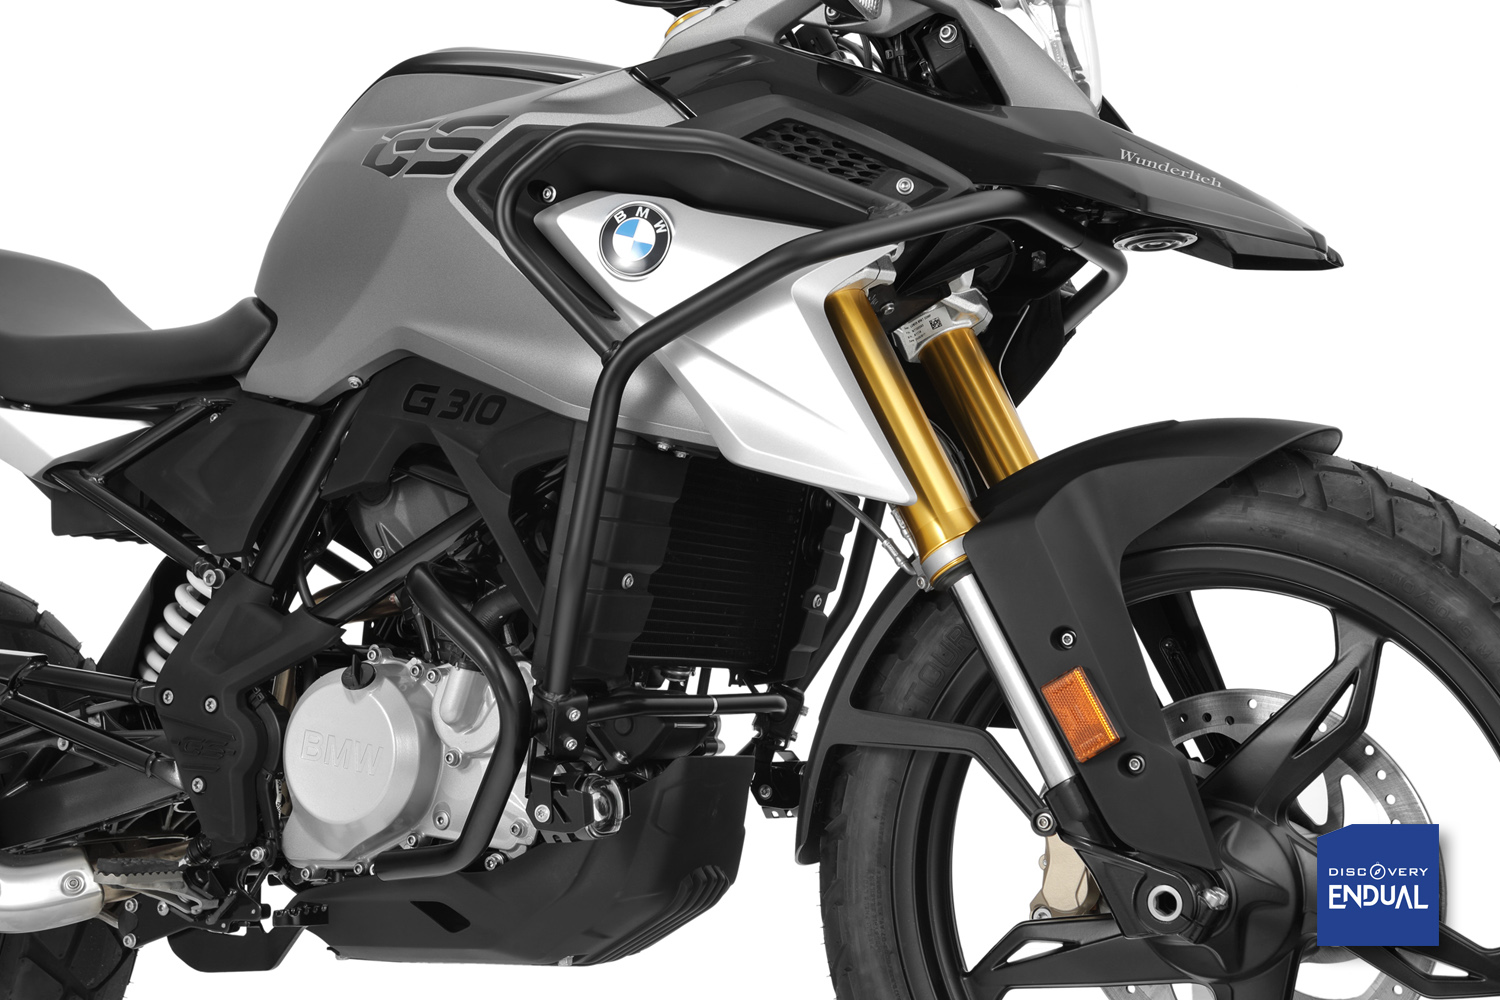 Wunderlich Optimizes The BMW G 310 GS